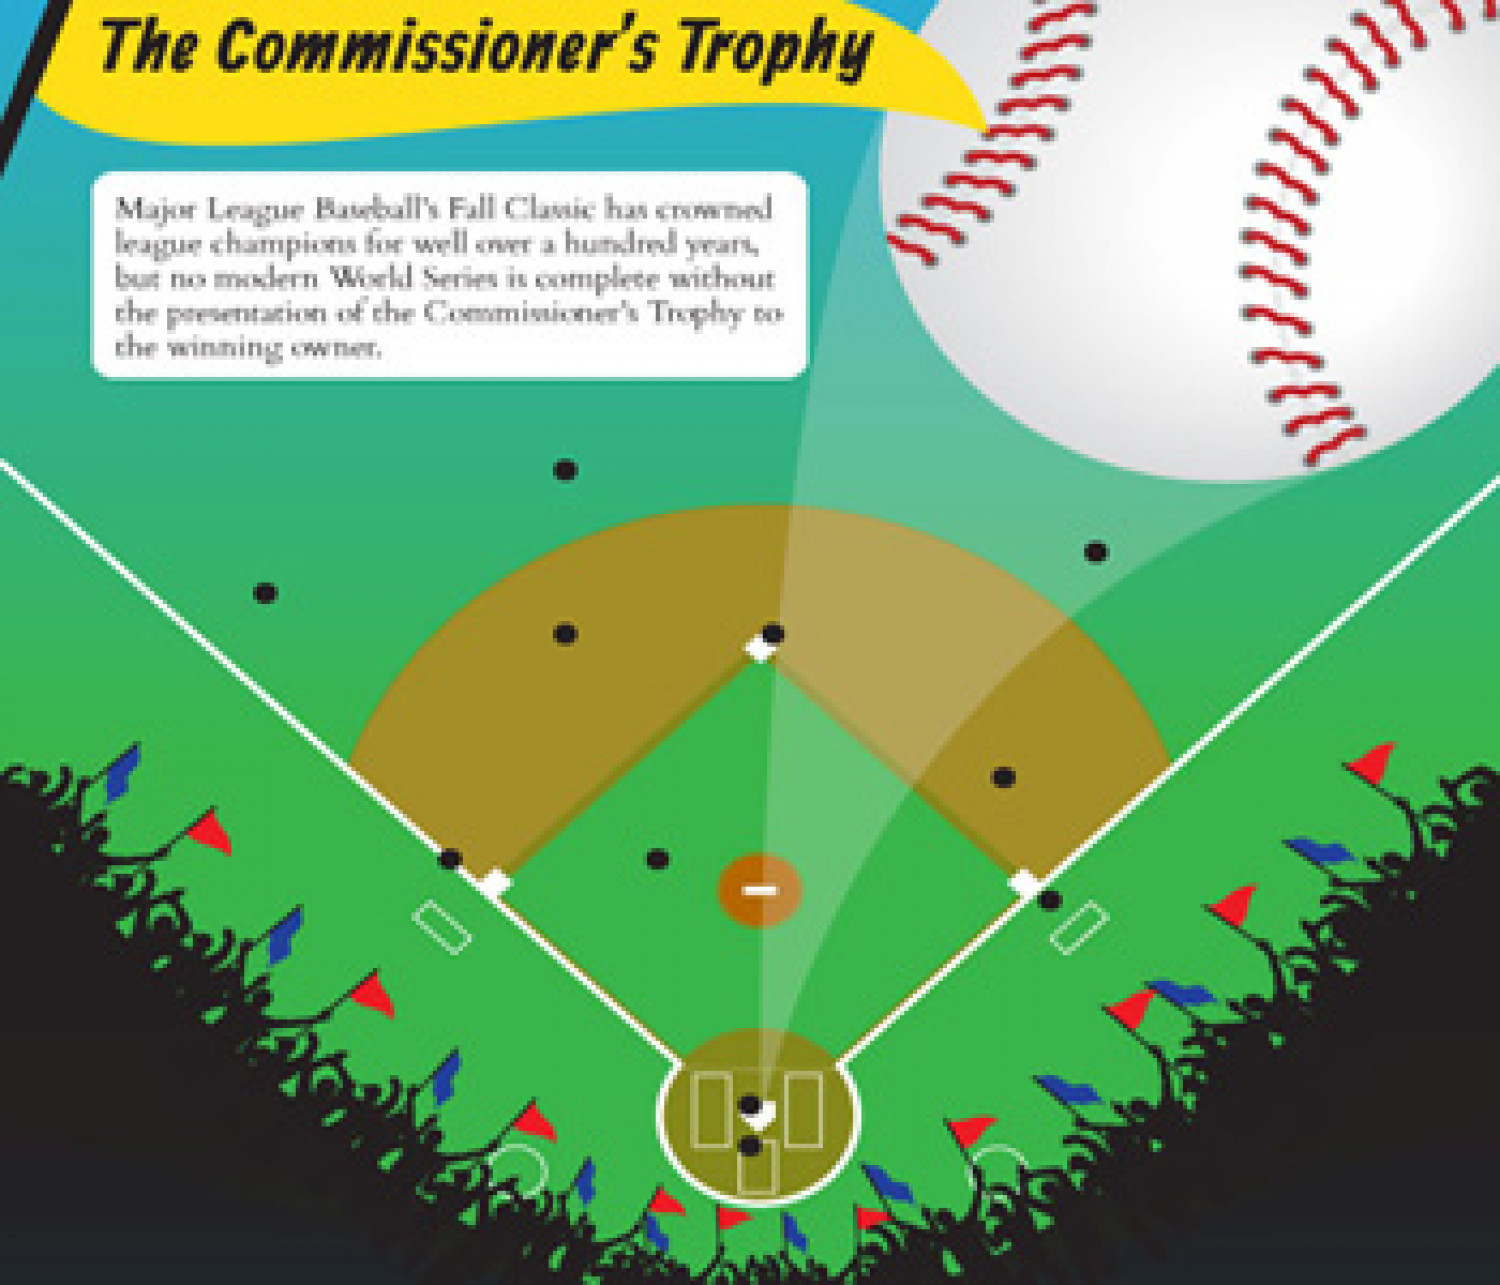 Infographic of the Commissioner's Trophy Infographic